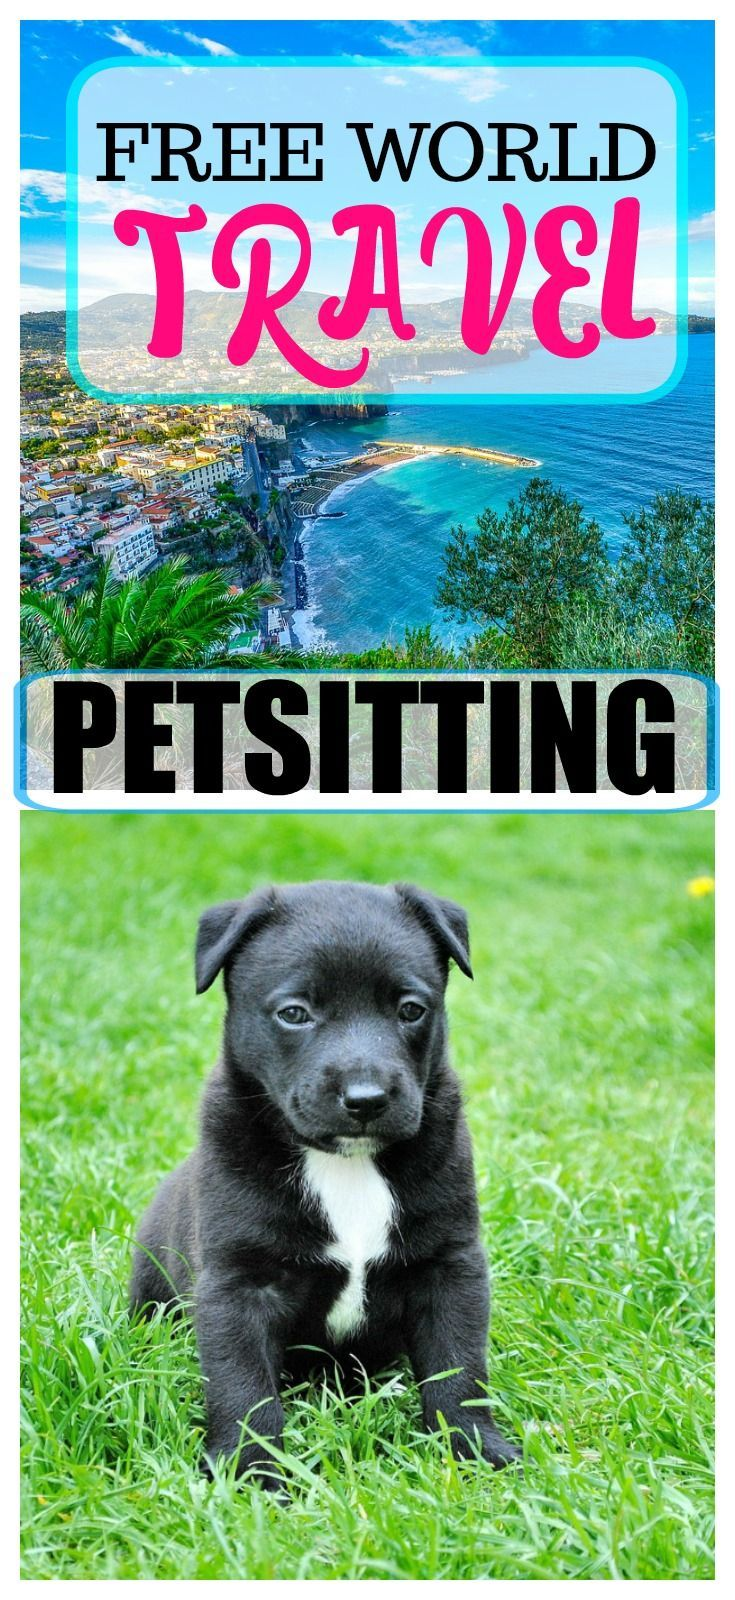 If you love dogs and cats, you can travel on a budget by petsitting! Stay in someone's home for free and watch their animals. There are homes all over the world, which is awesome.